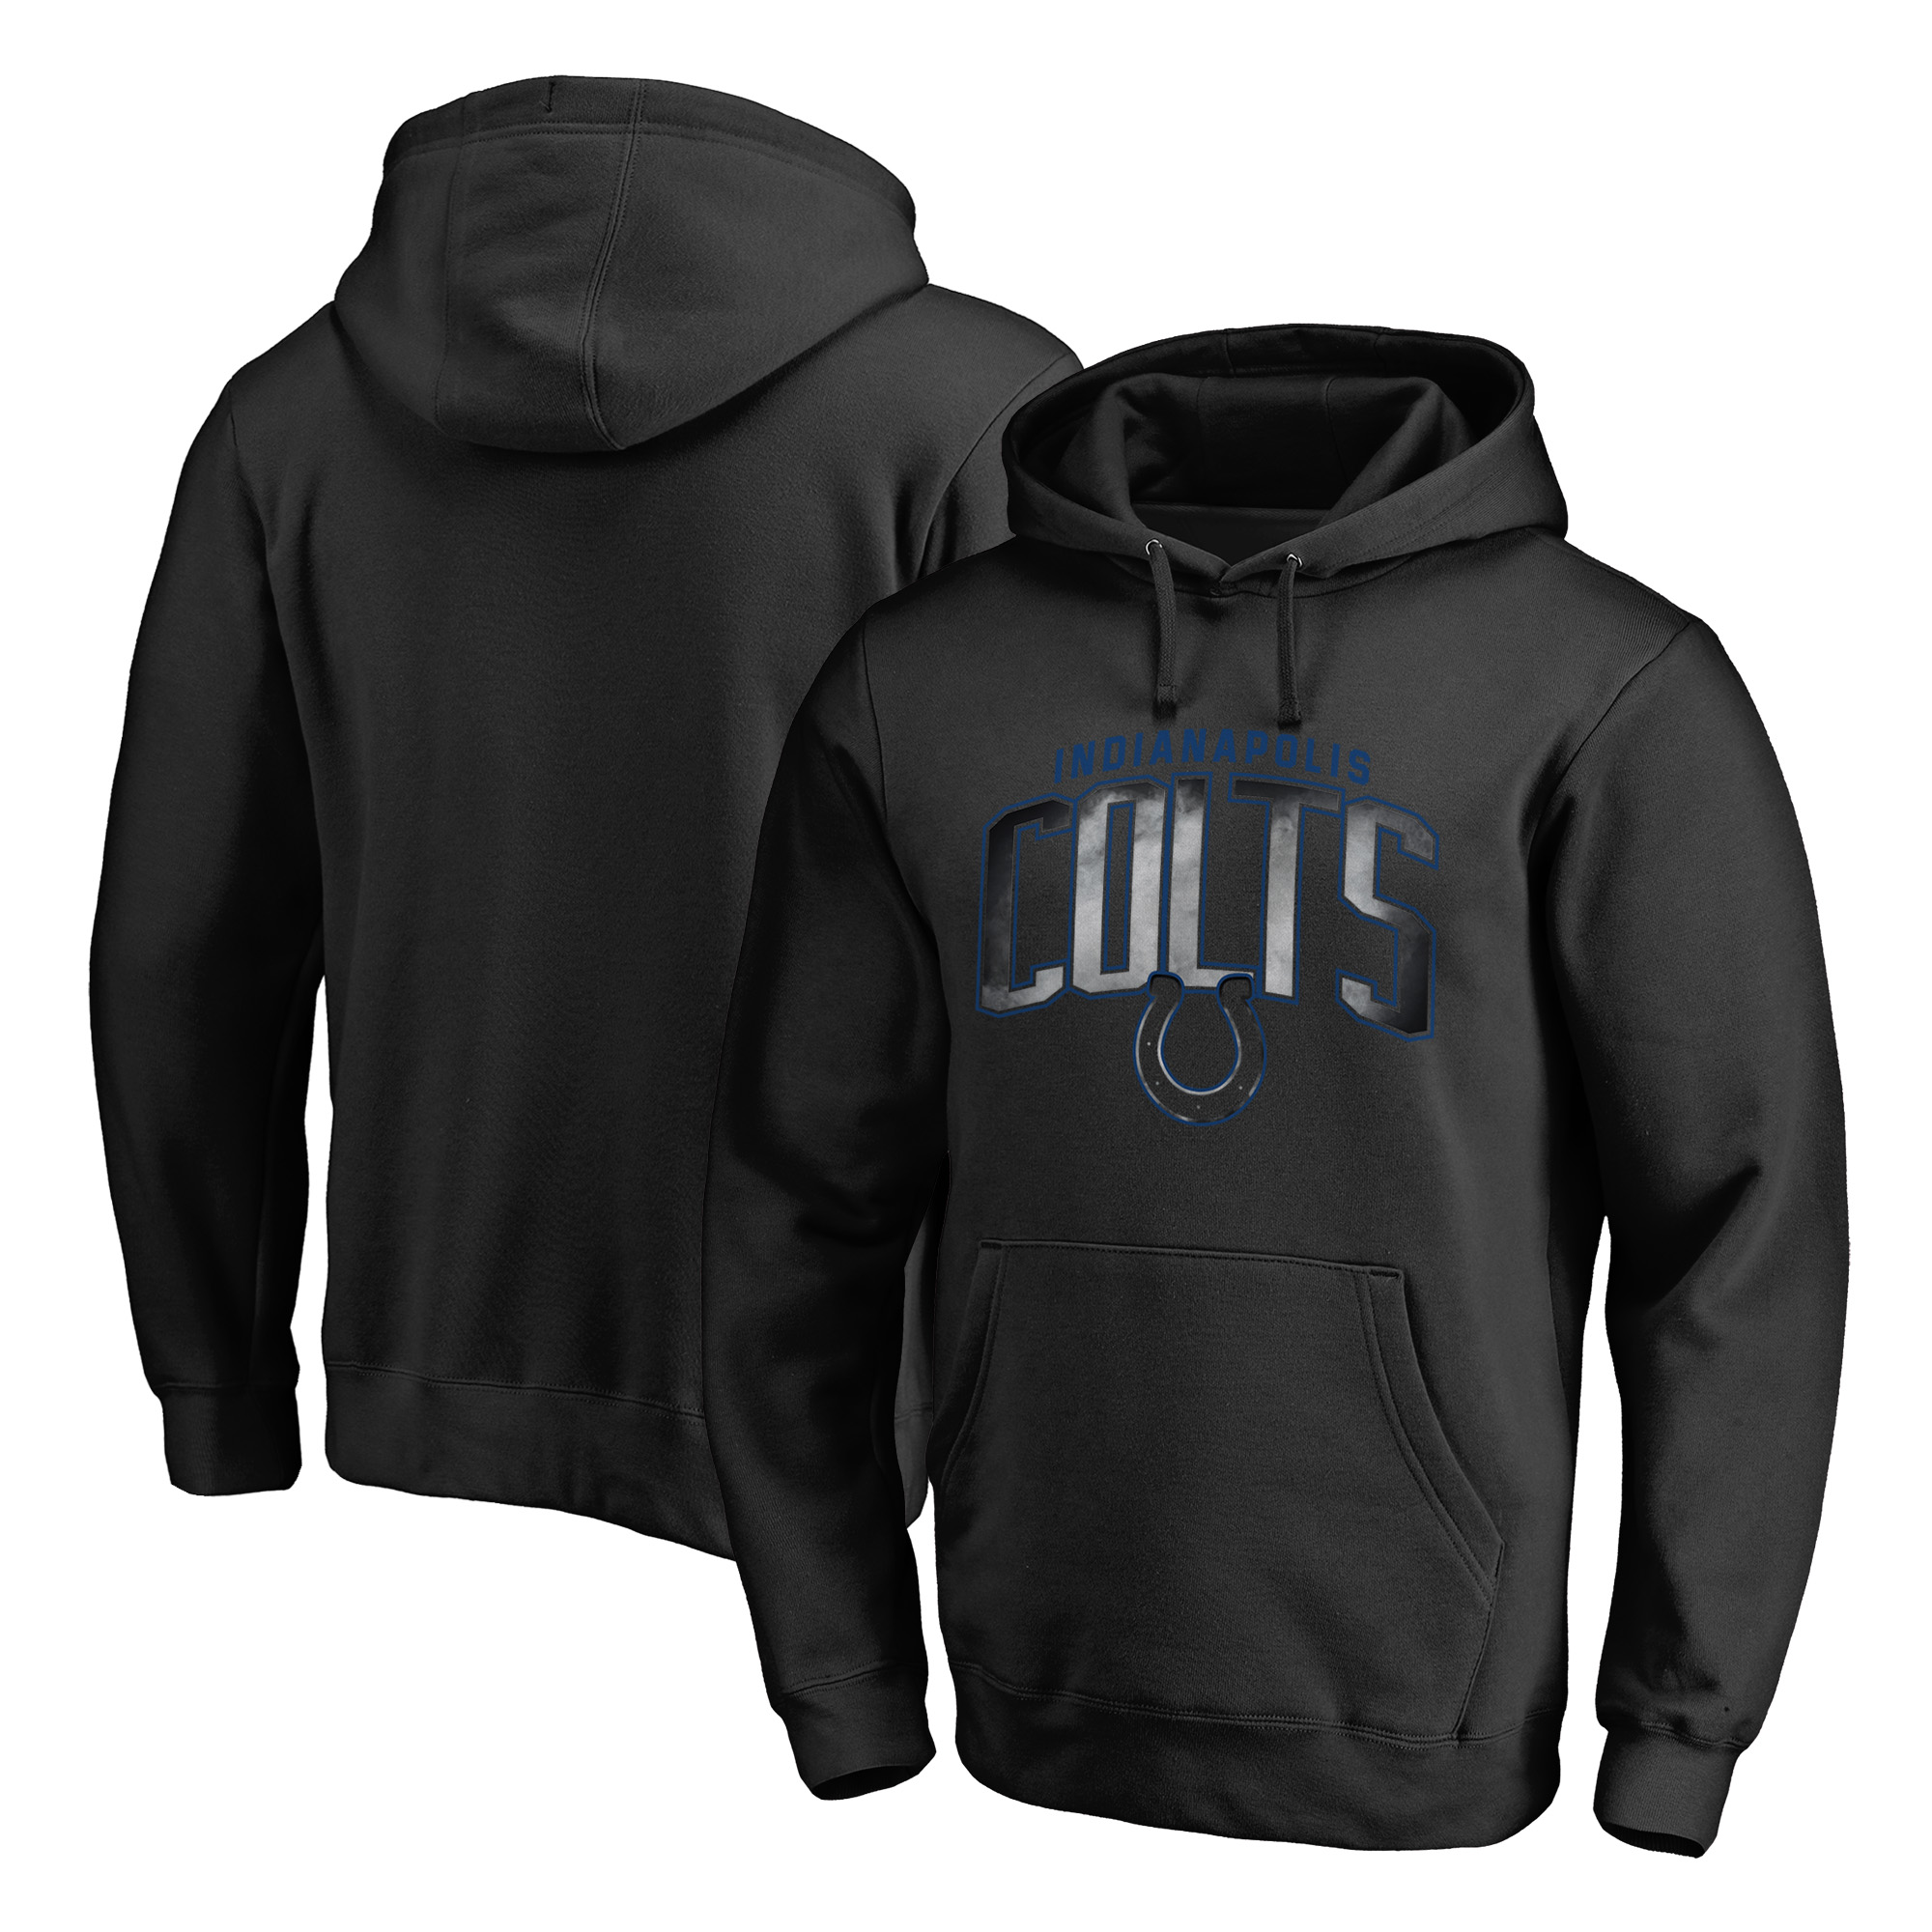 Indianapolis Colts NFL Pro Line by Fanatics Branded Arch Smoke Pullover Hoodie - Black